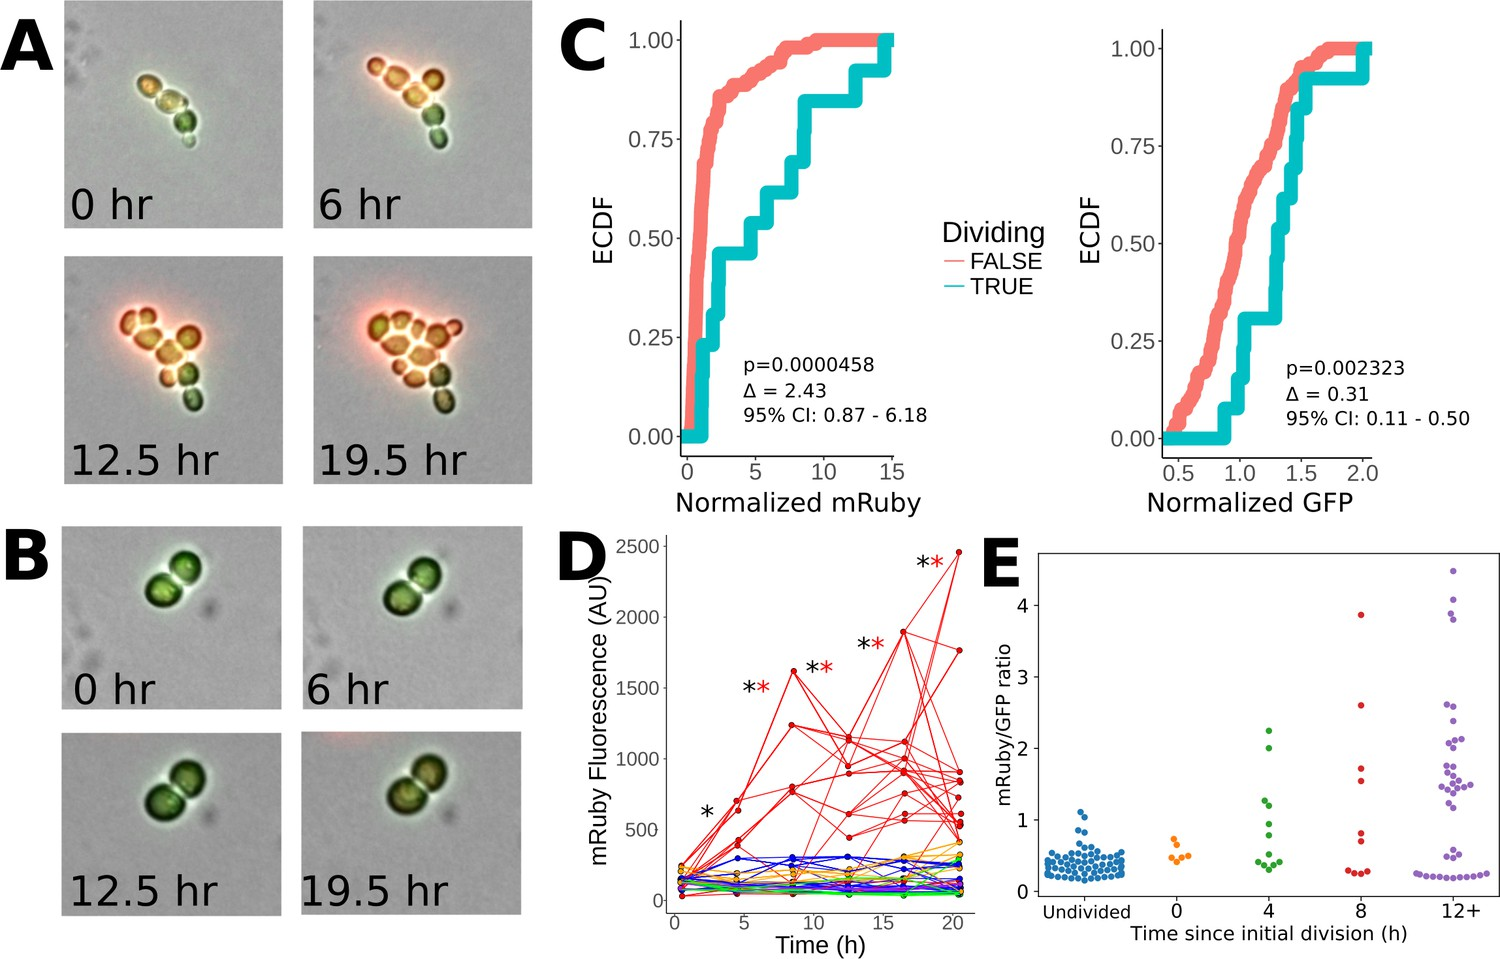 Stochastic Tuning Of Gene Expression Enables Cellular Adaptation In Figure 435 Rc Integrator Circuit Heritability Elevated Mruby Levels During